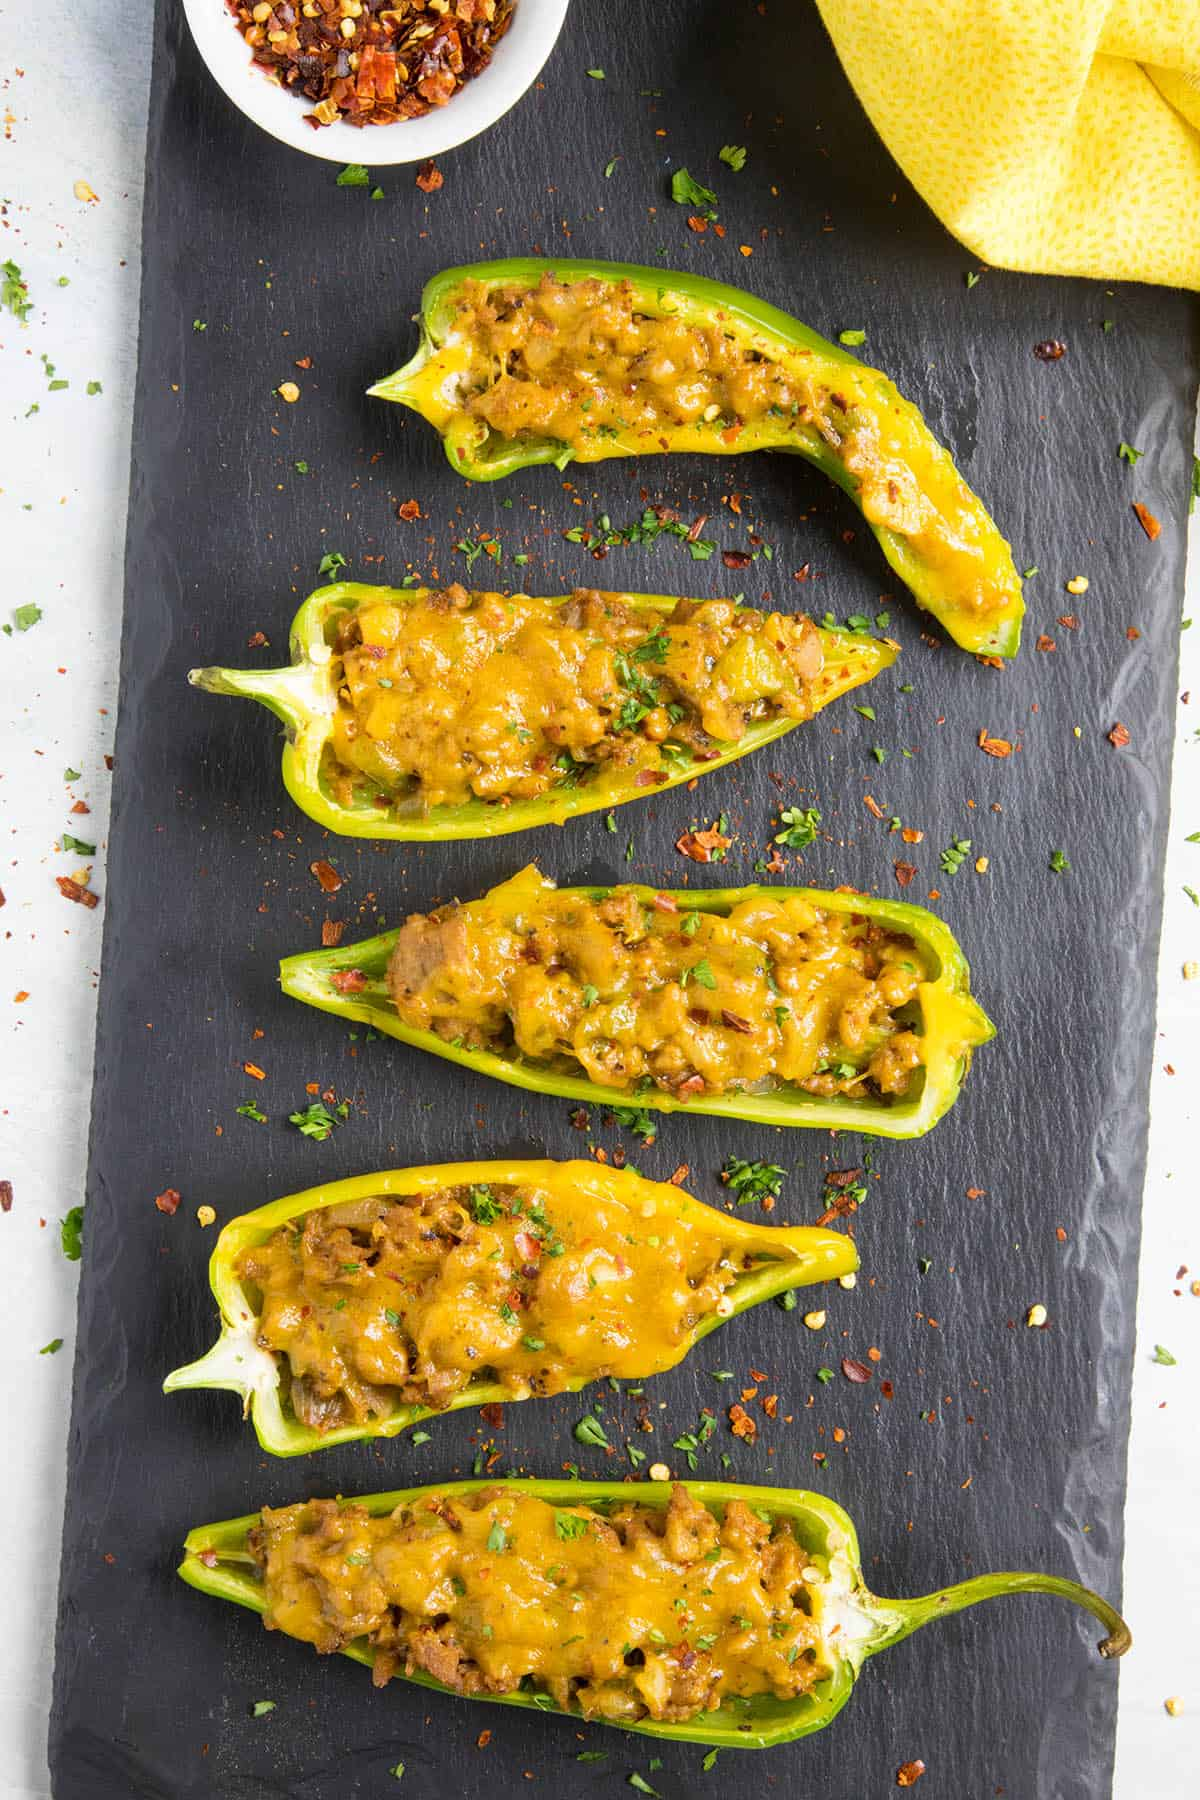 Turkey and Cheddar Stuffed Anaheim Peppers on a platter